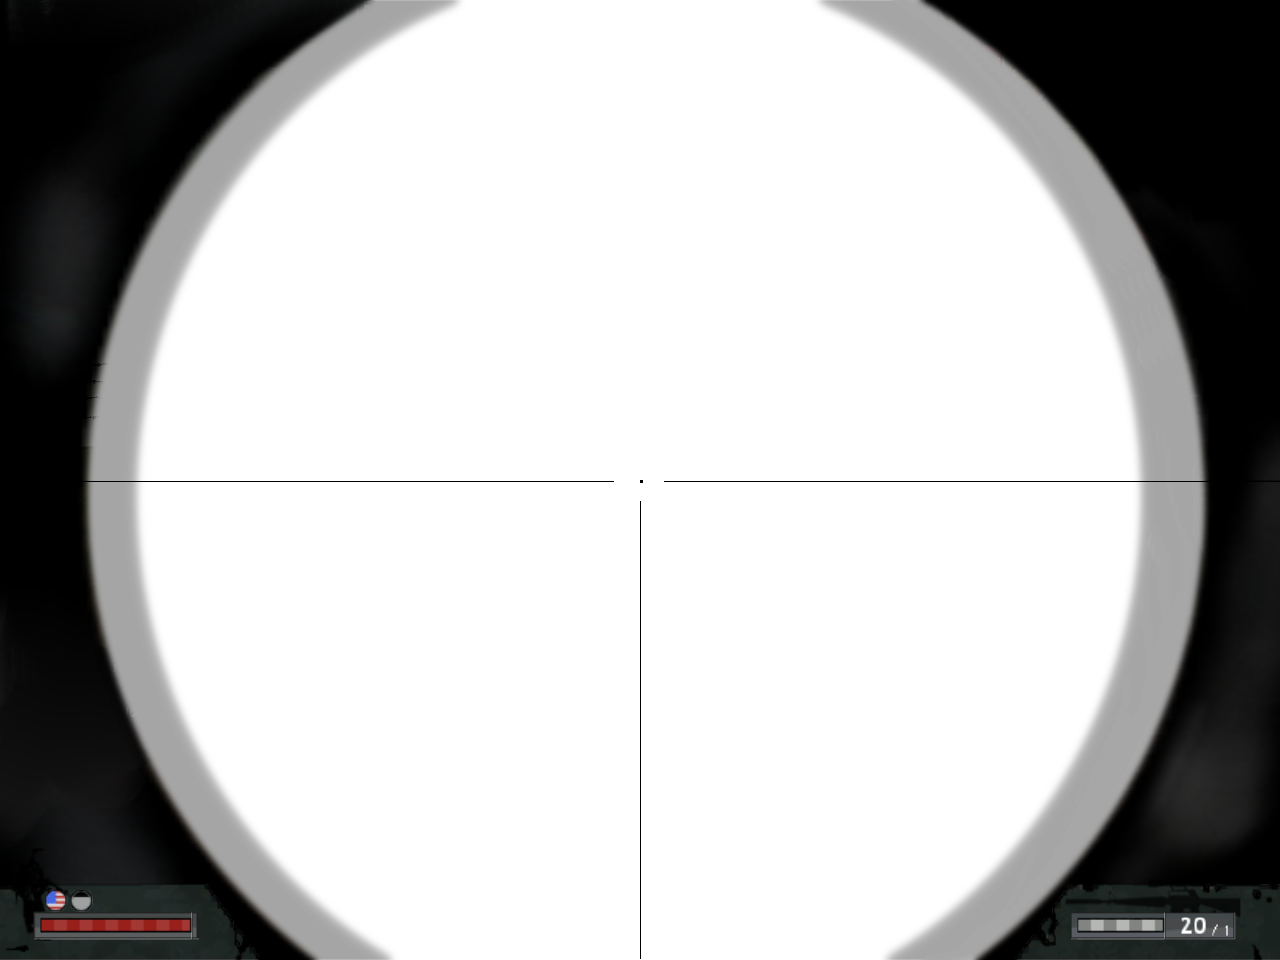 Intervention scope png. Image m reticle battlefield